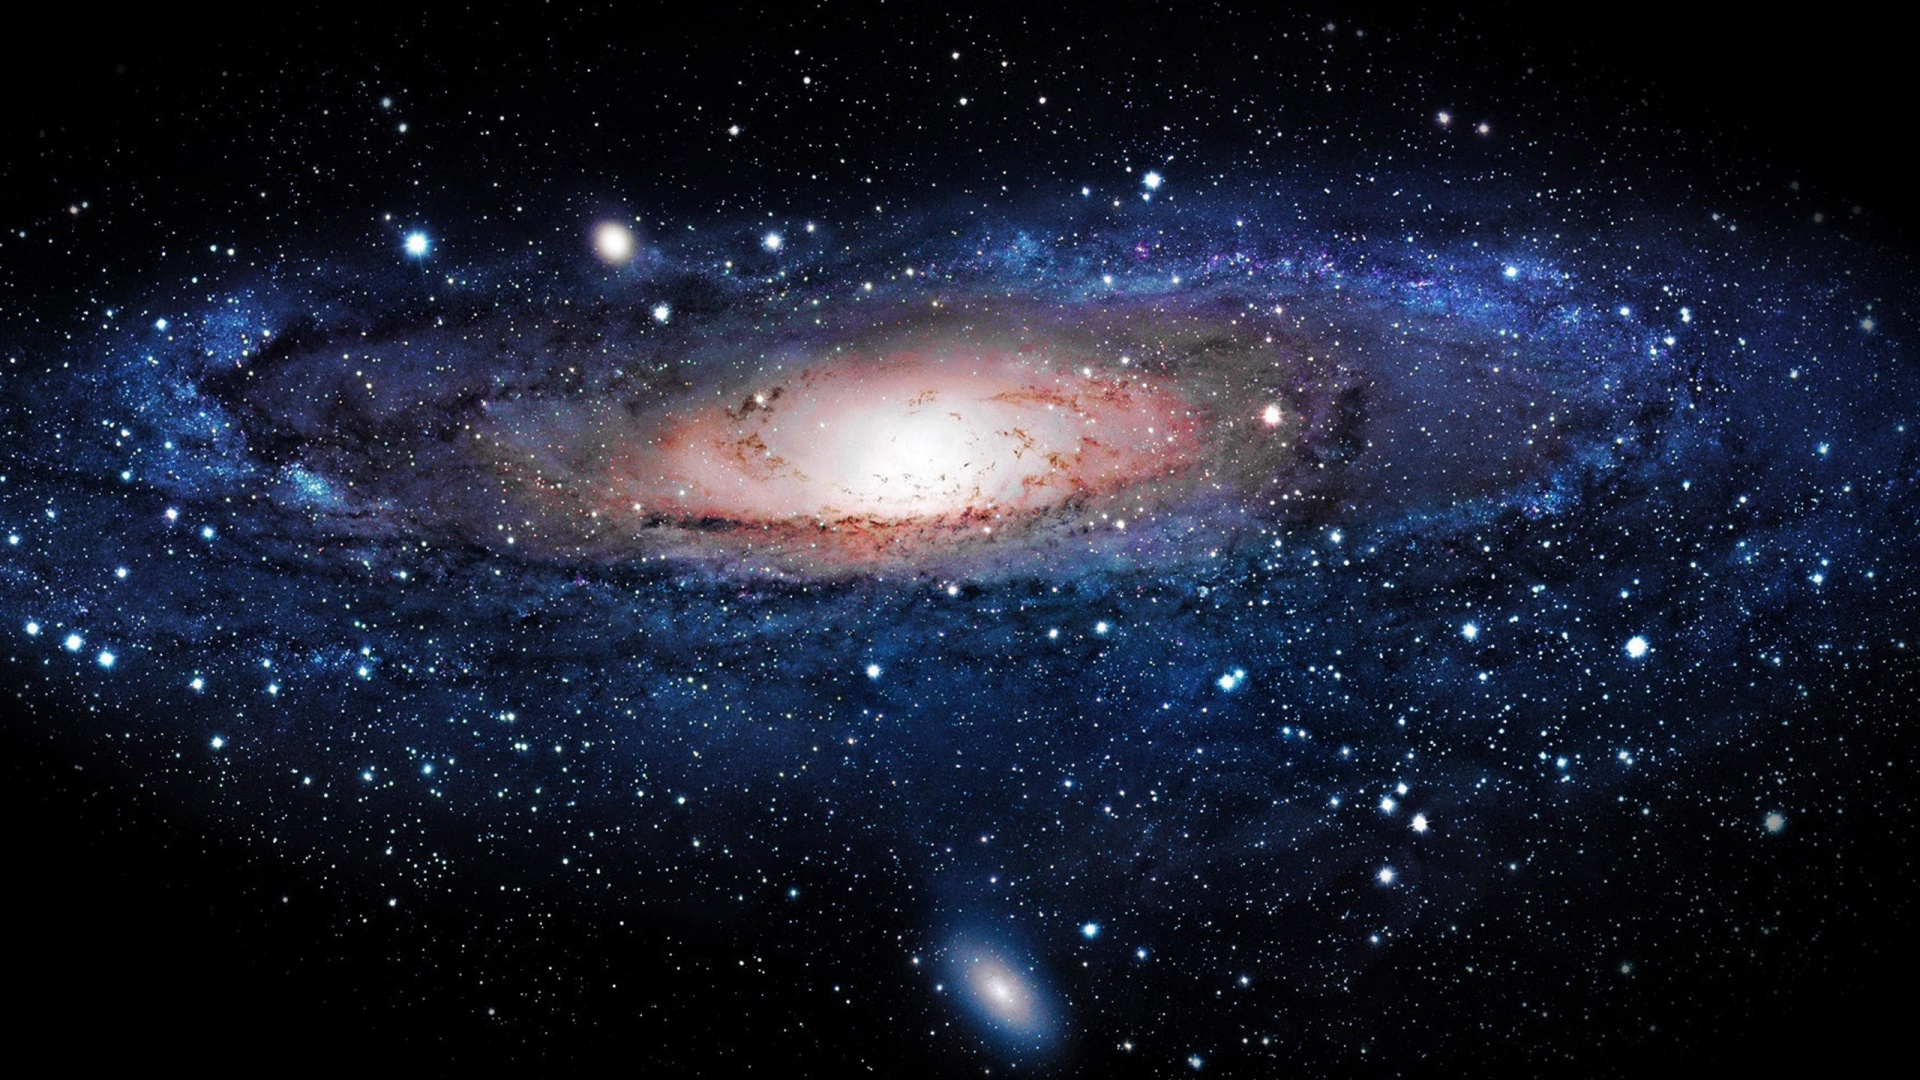 Galaxy Computer Wallpaper HD 1080p HD Desktop Wallpapers 1920x1080